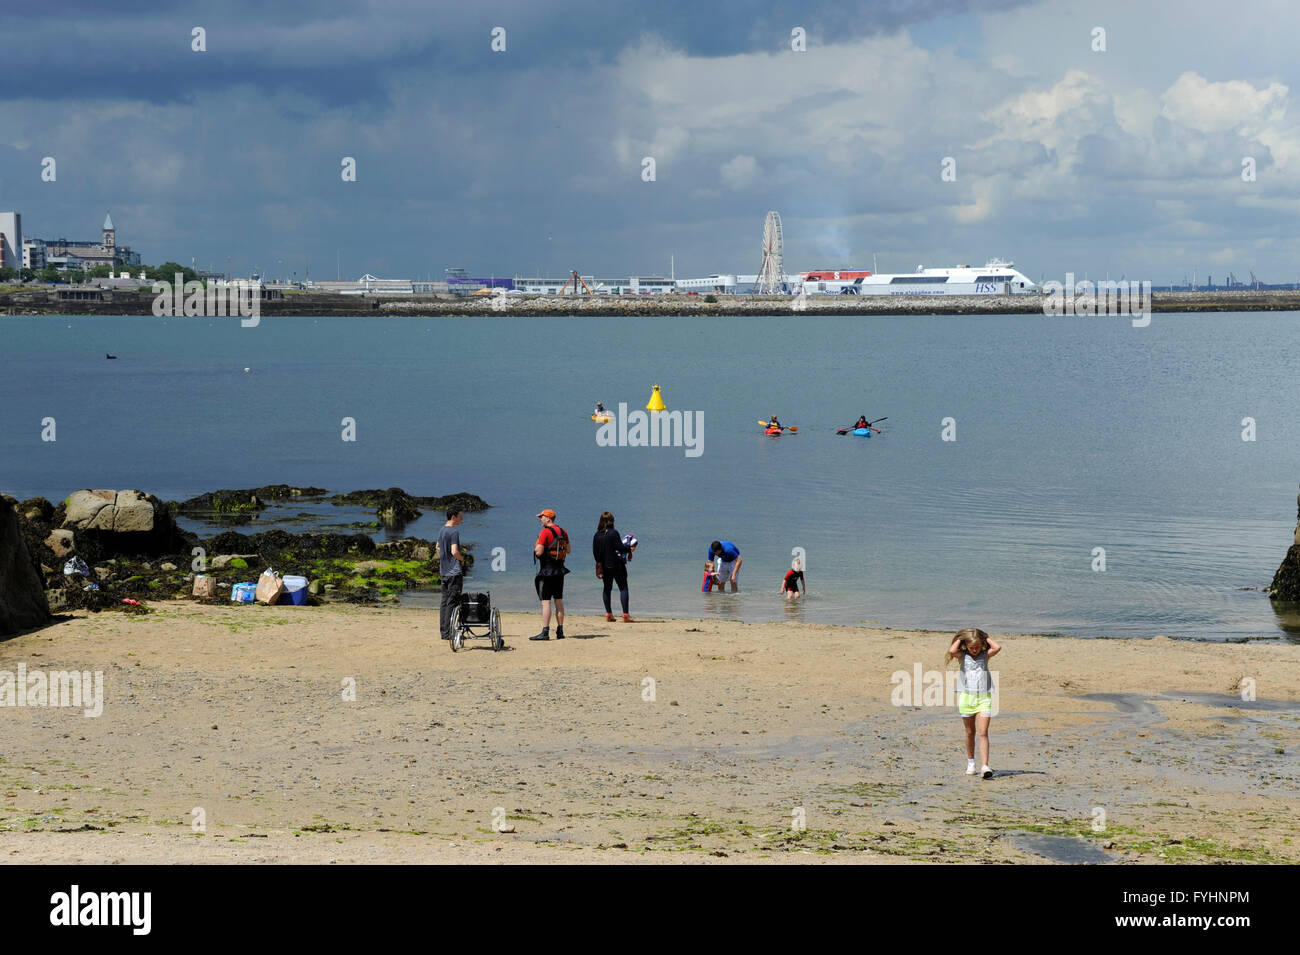 All beaches are safe to swim in the Dn Laoghaire-Rathdown